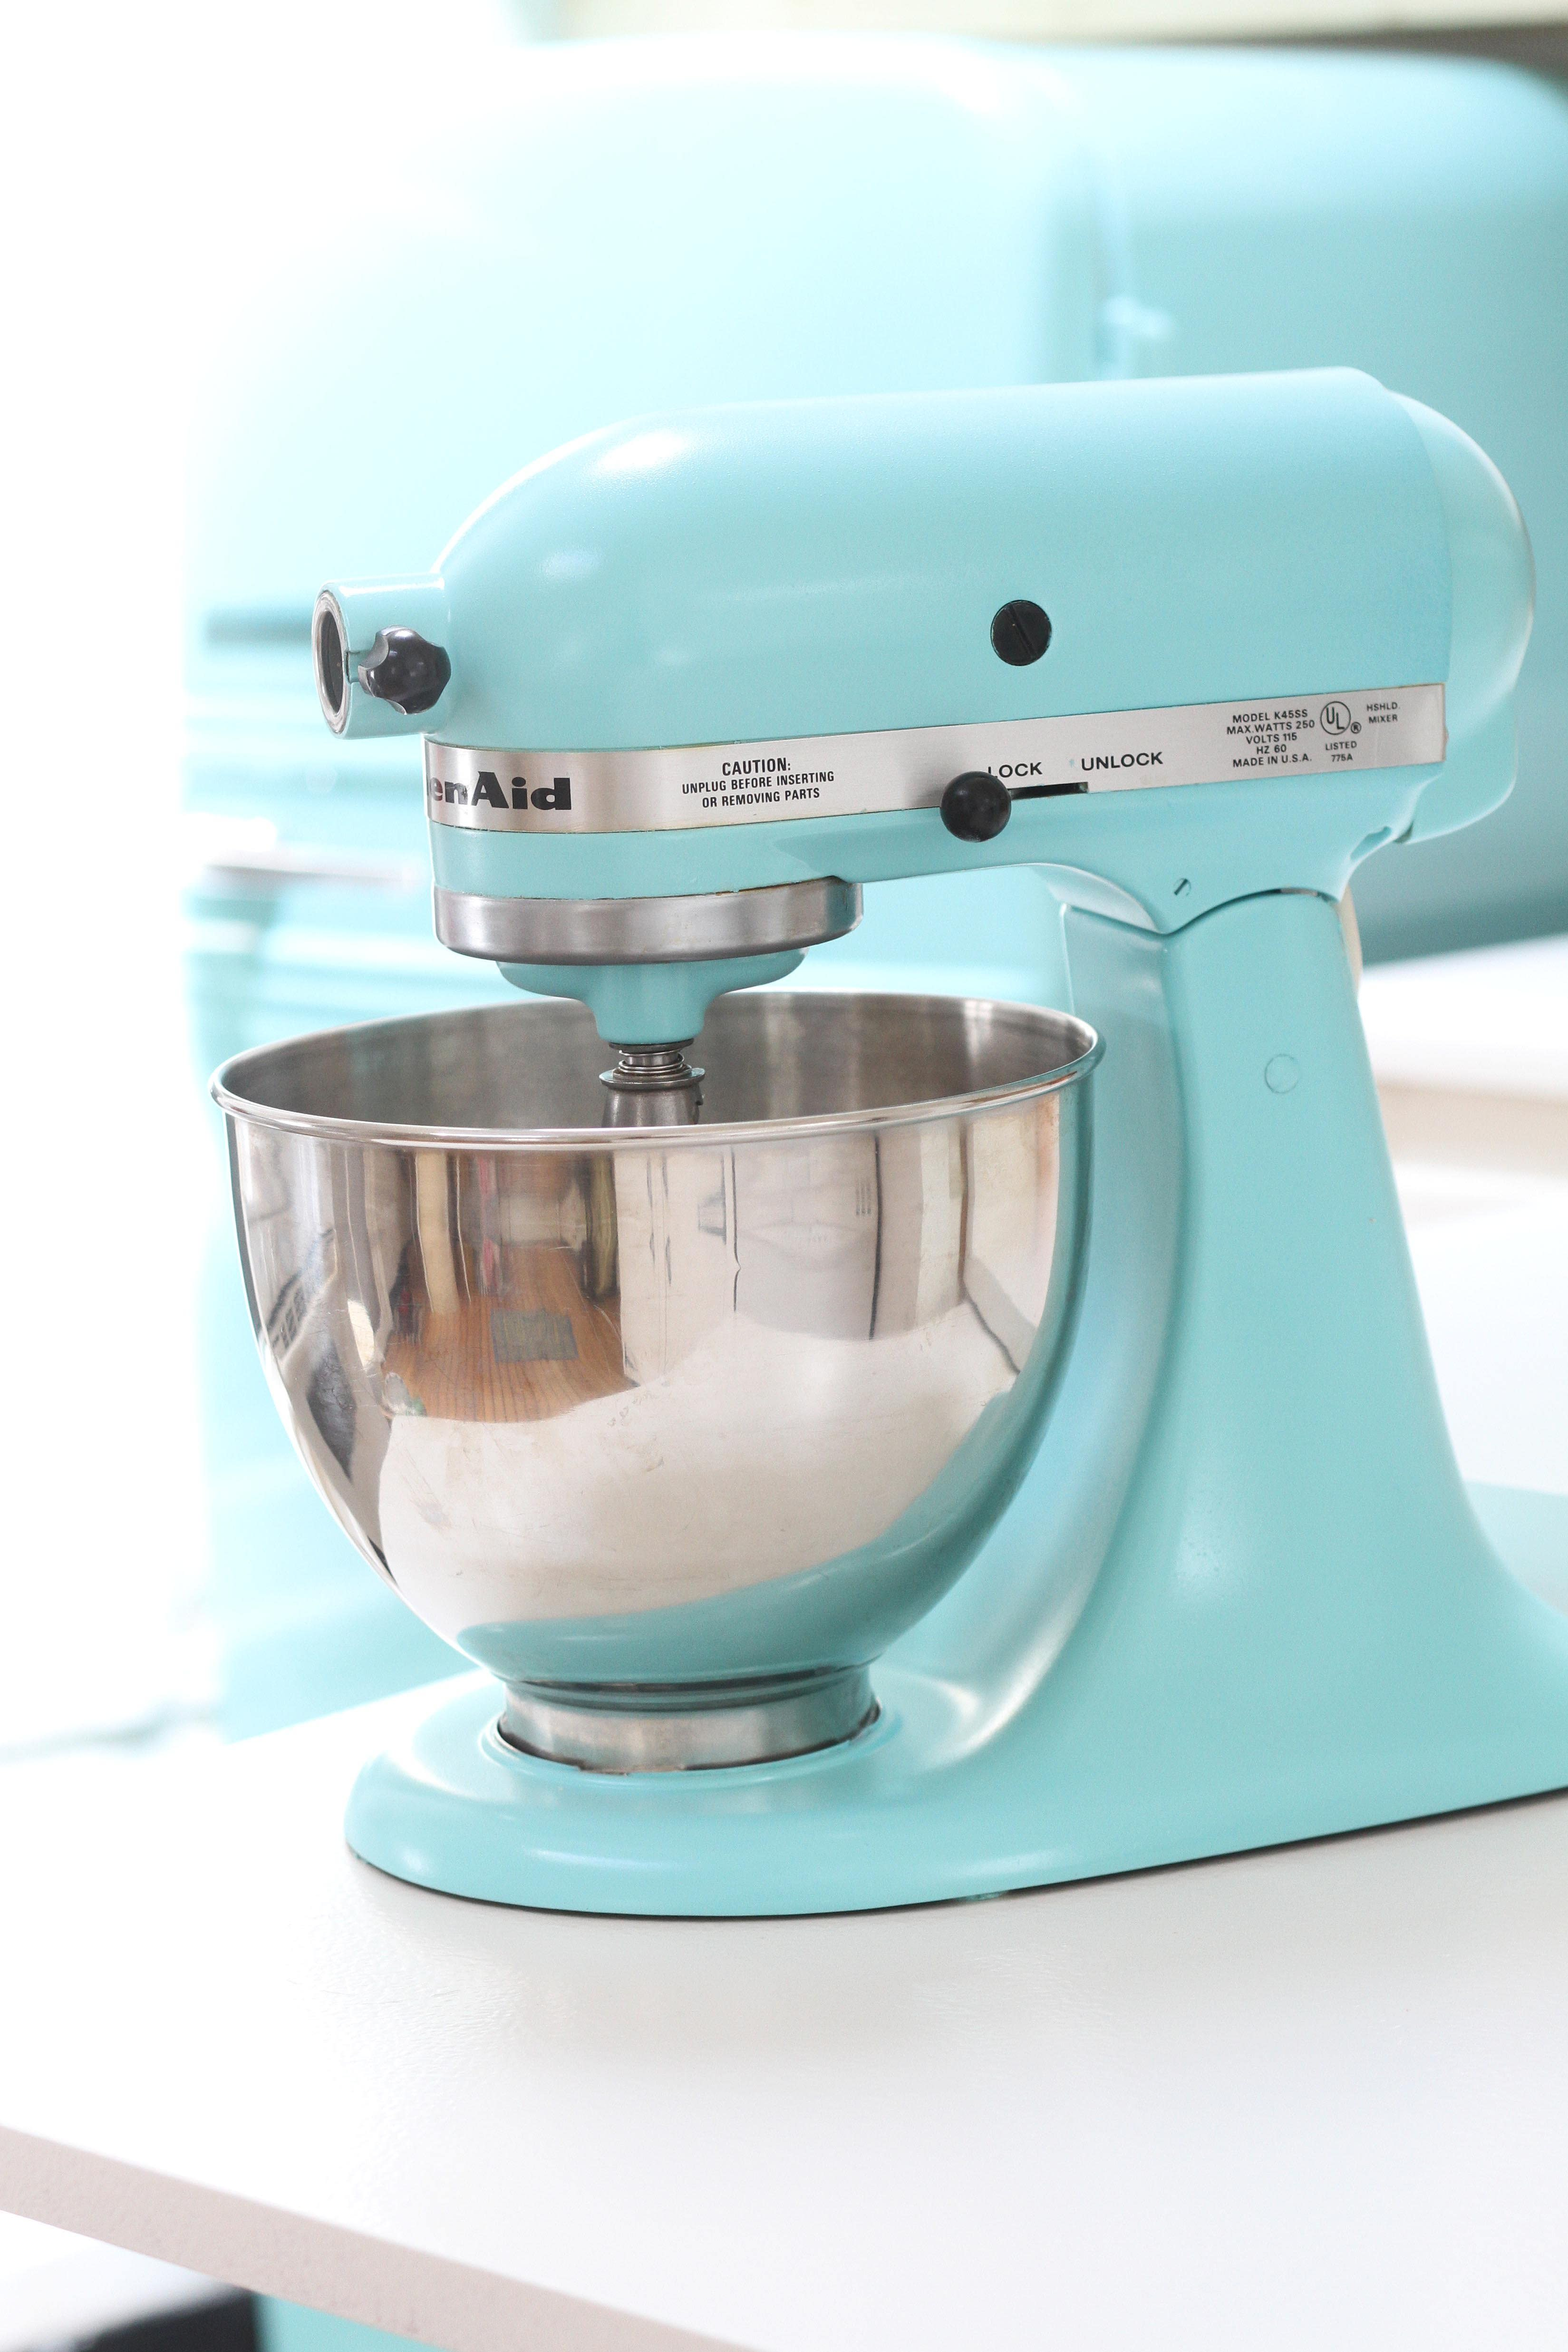 """Would You Buy a """"Mini"""" KitchenAid Stand Mixer?   Kitchn on cinnamon rolls with kitchenaid mixer, making bread with olive oil, cookies with kitchenaid mixer, kitchenaid 9-speed hand mixer, making bread with vitamix, making bread at home, pasta with kitchenaid mixer,"""